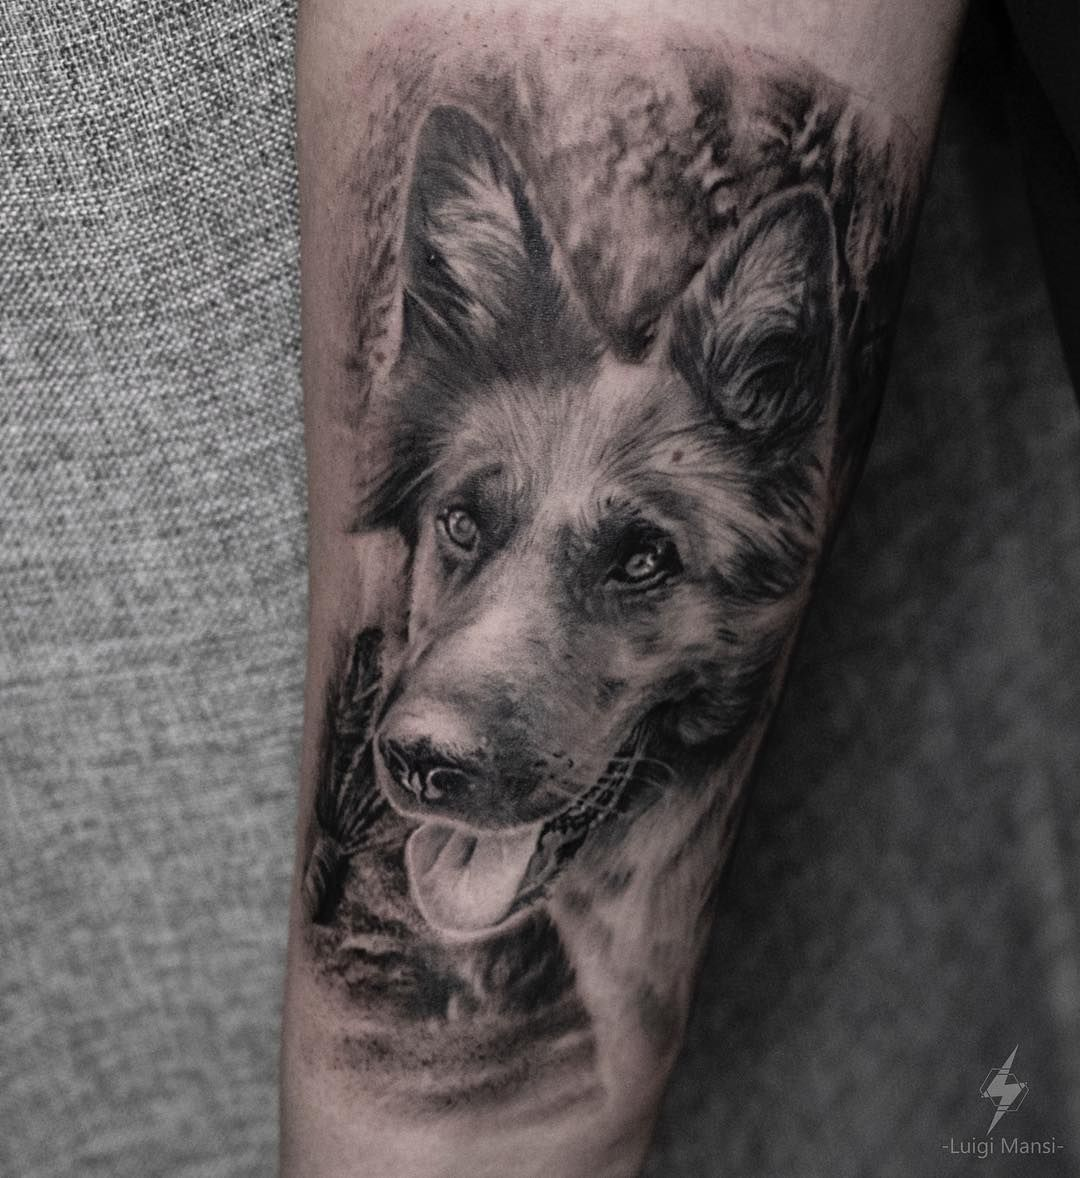 Lo Hai Salvato In Realistic Tattoo 1 Tattoo Dog Info Luigimansi It Instagram Luigimansi Ink Tattoo Tatuaggio Art Artist D Artist Animal Tattoo Tattoos